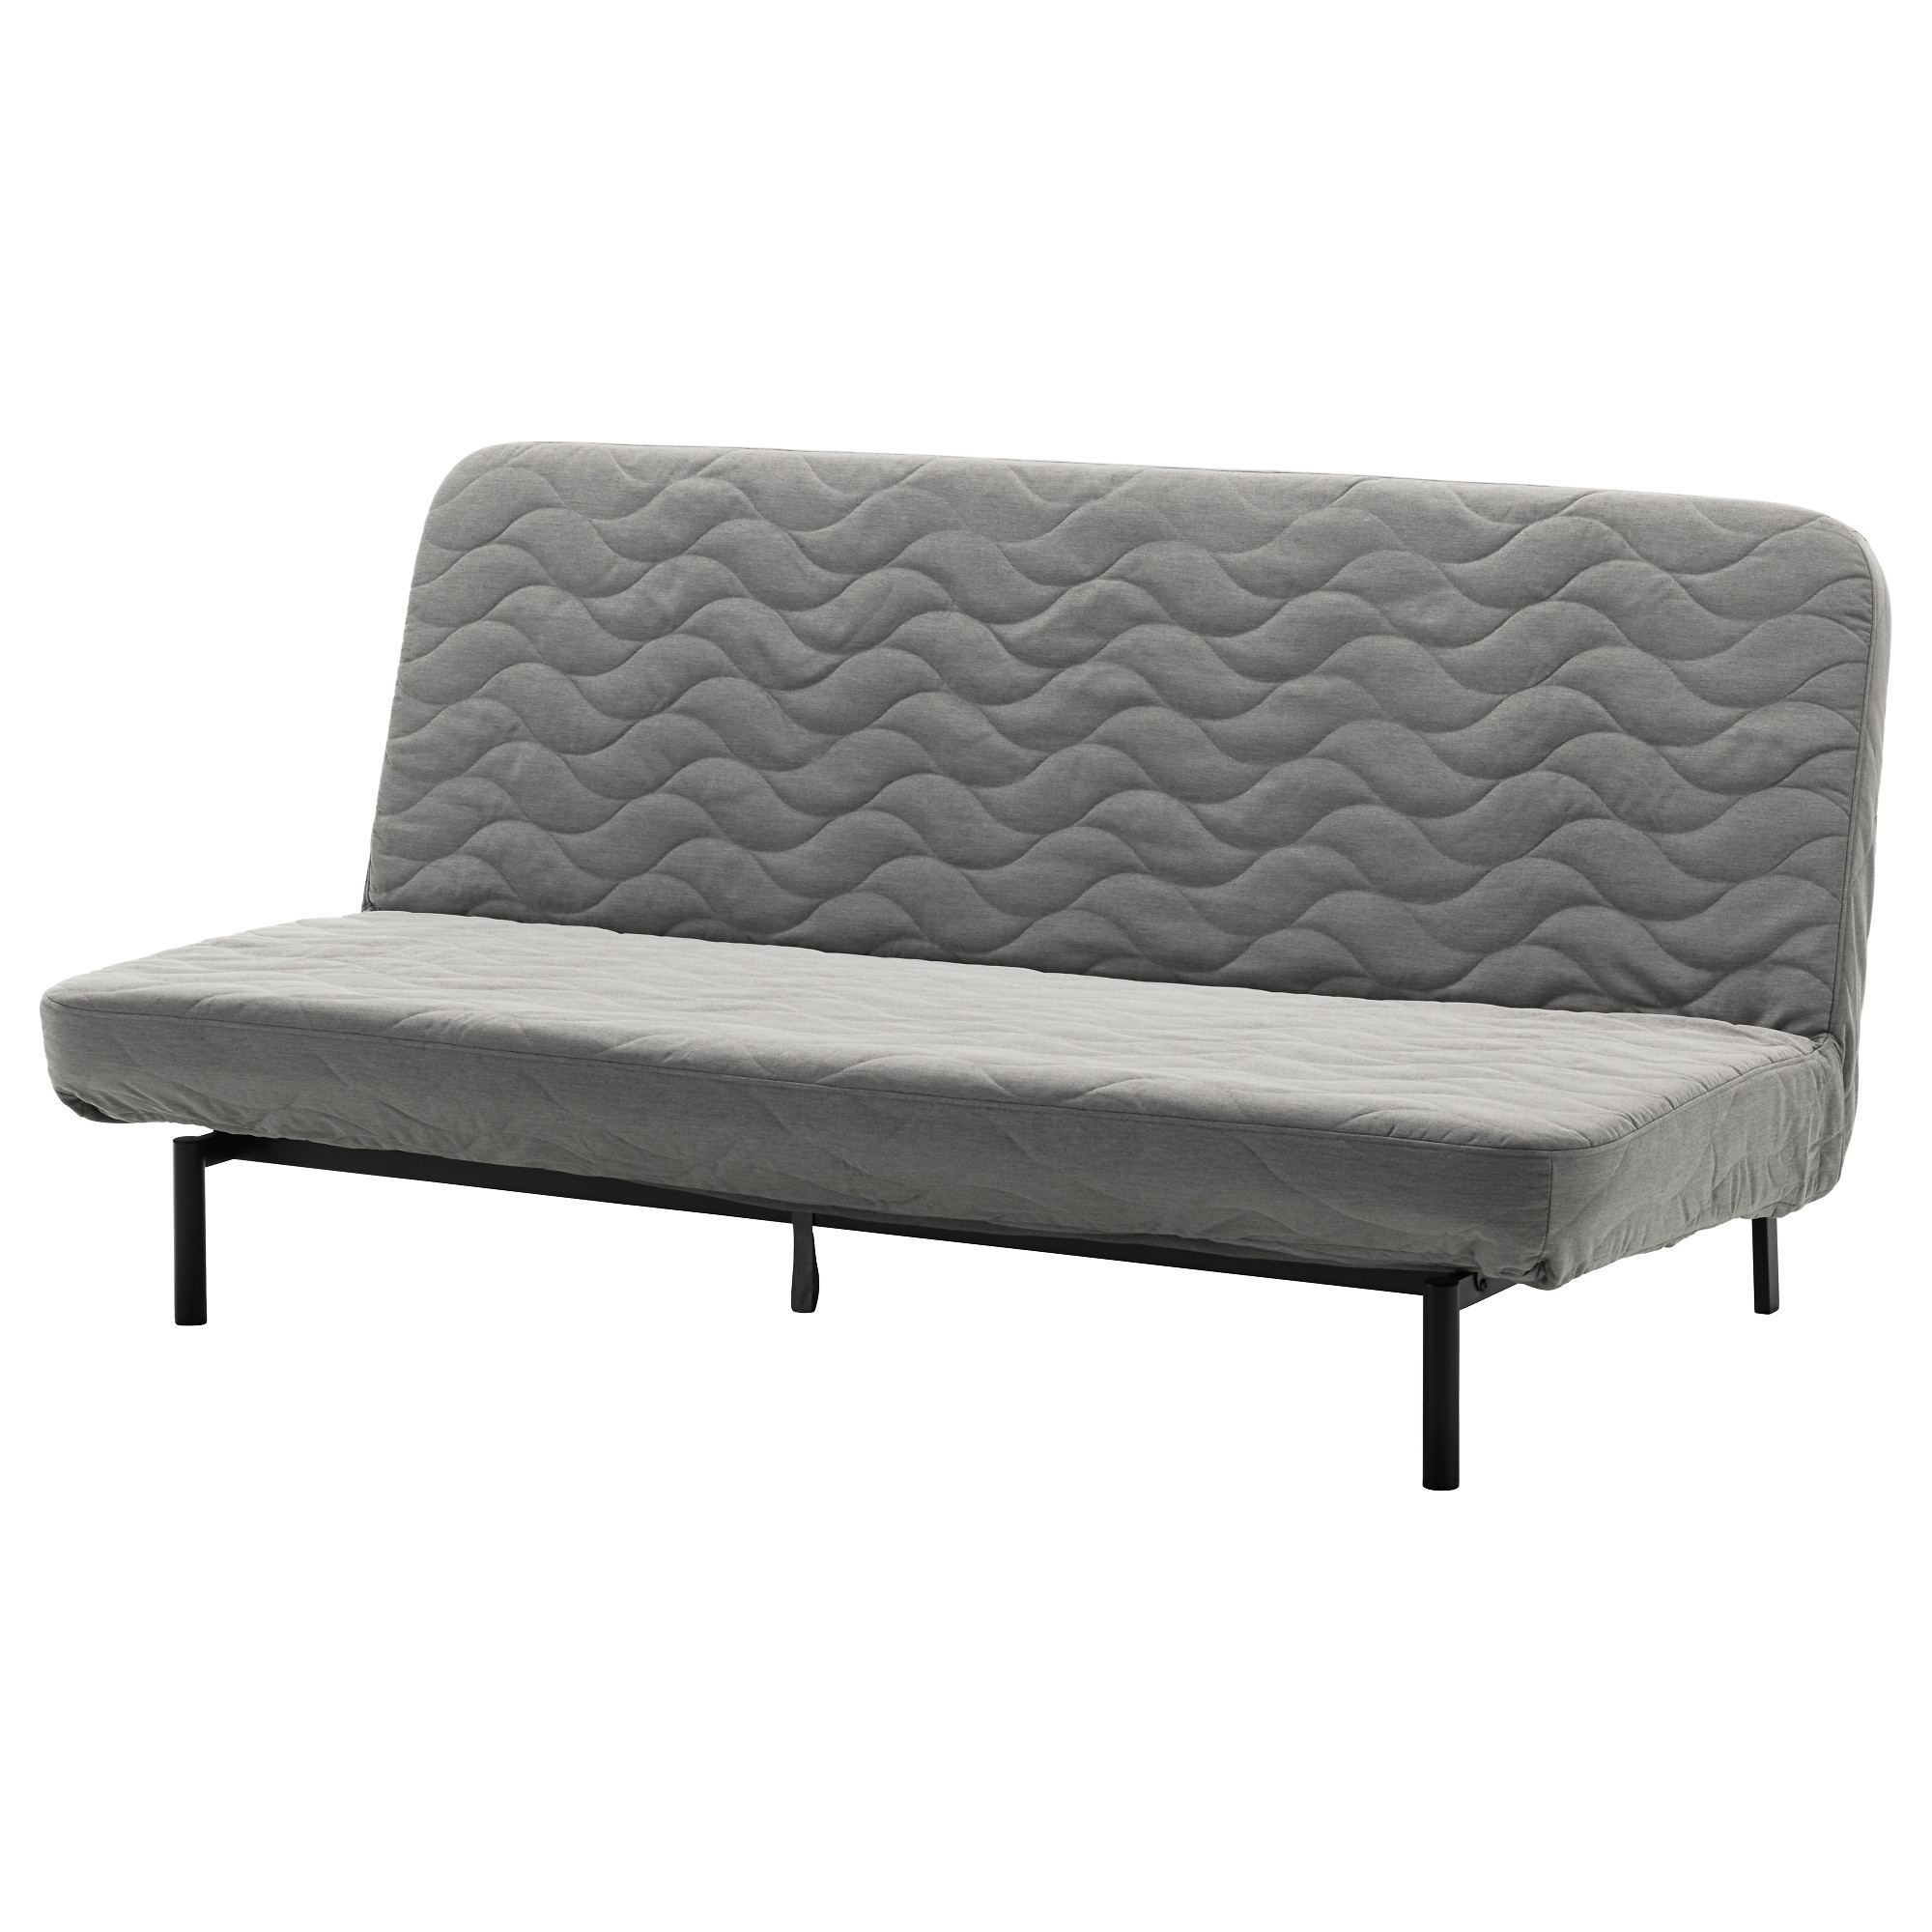 Sleeper Sofa Nyhamn With Pocket Spring Mattress Knisa Gray Beige